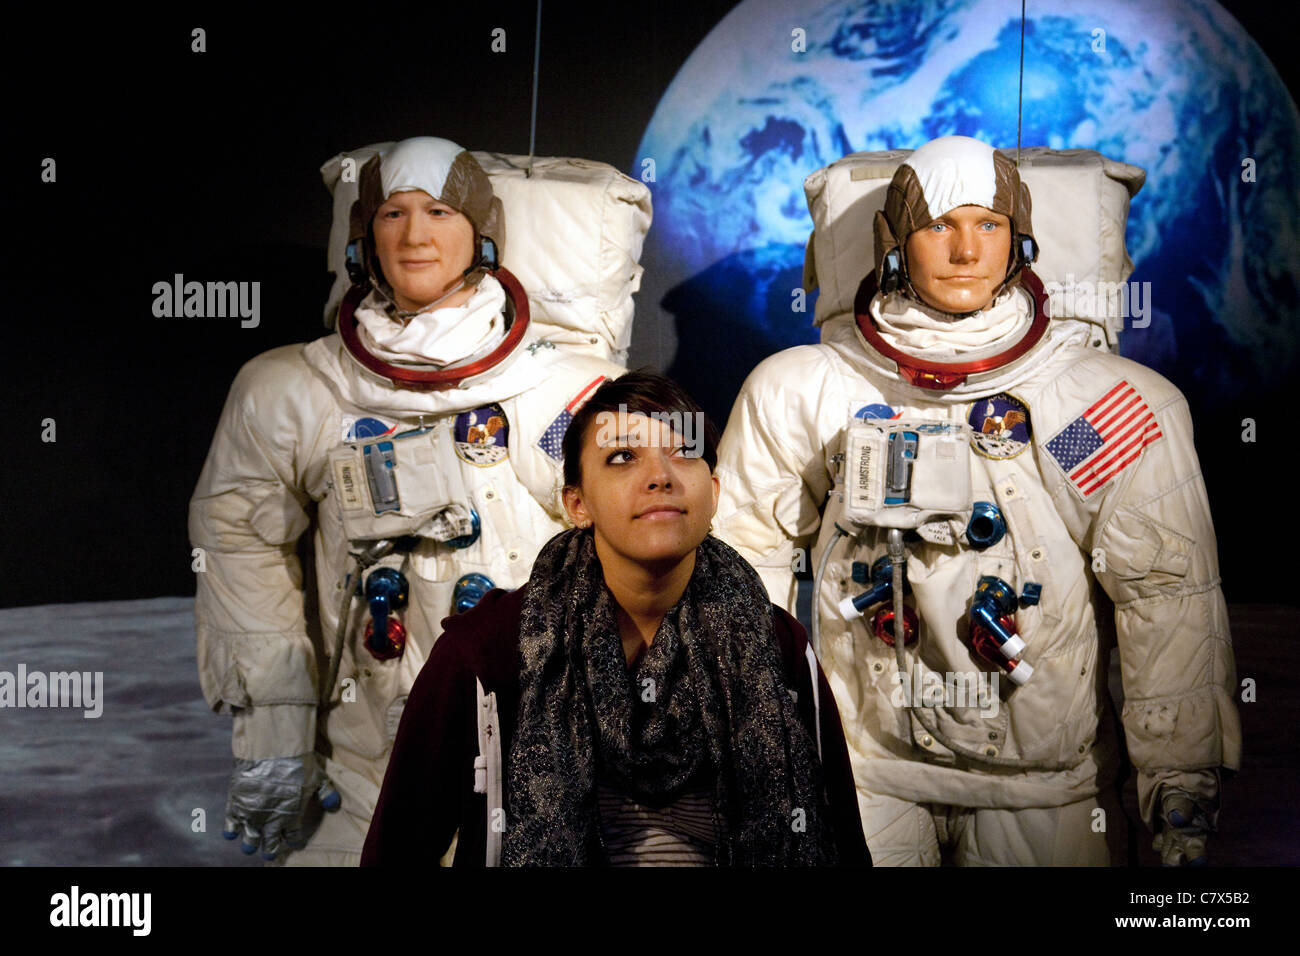 Tourist posing with waxworks of Neil Armstrong and Buzz Aldrin  at Madame Tussauds waxworks, Washington DC USA Stock Photo